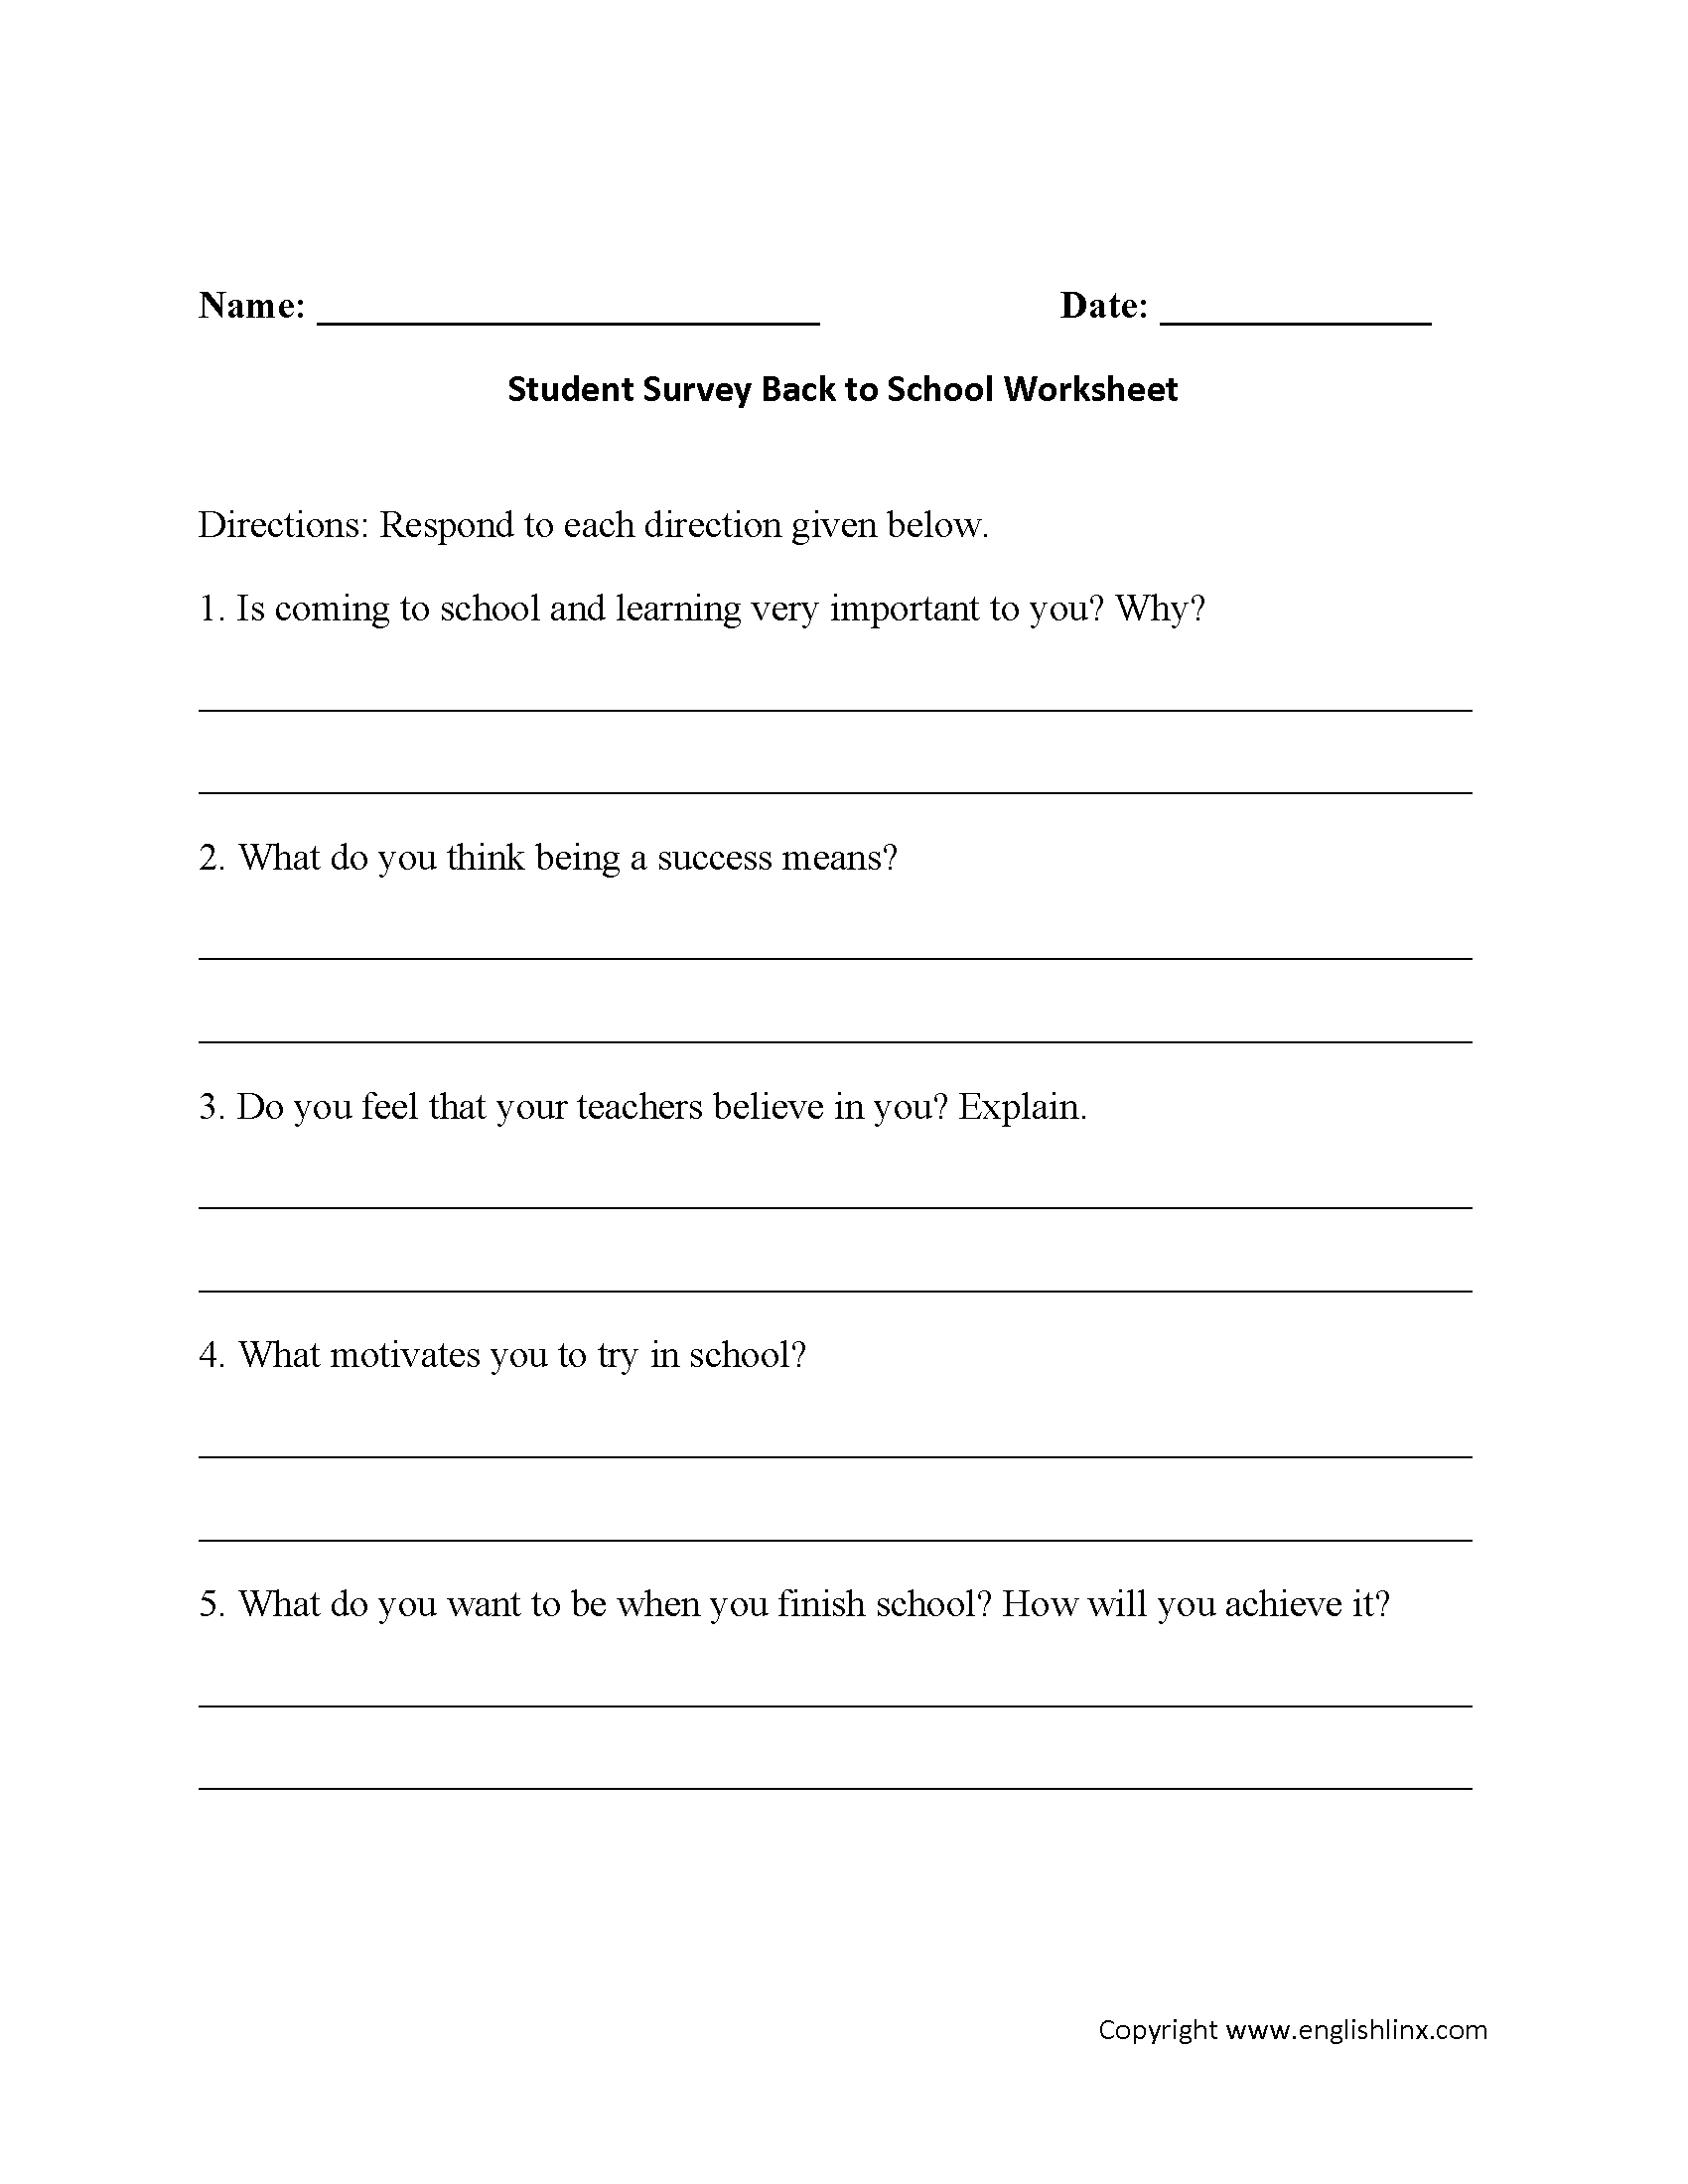 Student Survey Back To School Worksheets With Images